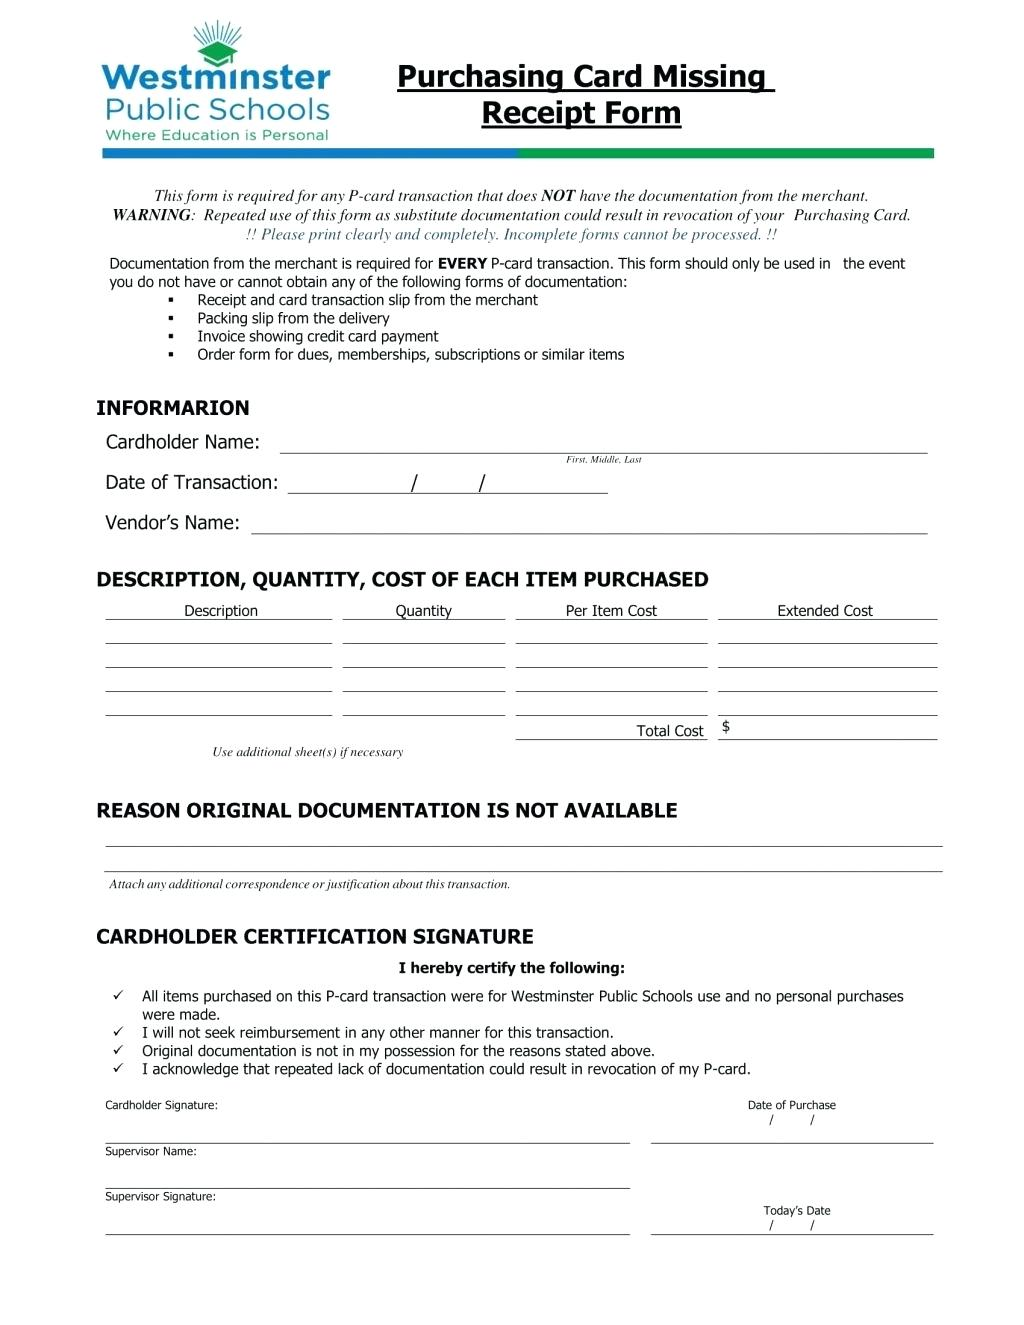 Earnest Money Agreement Form Vehicle